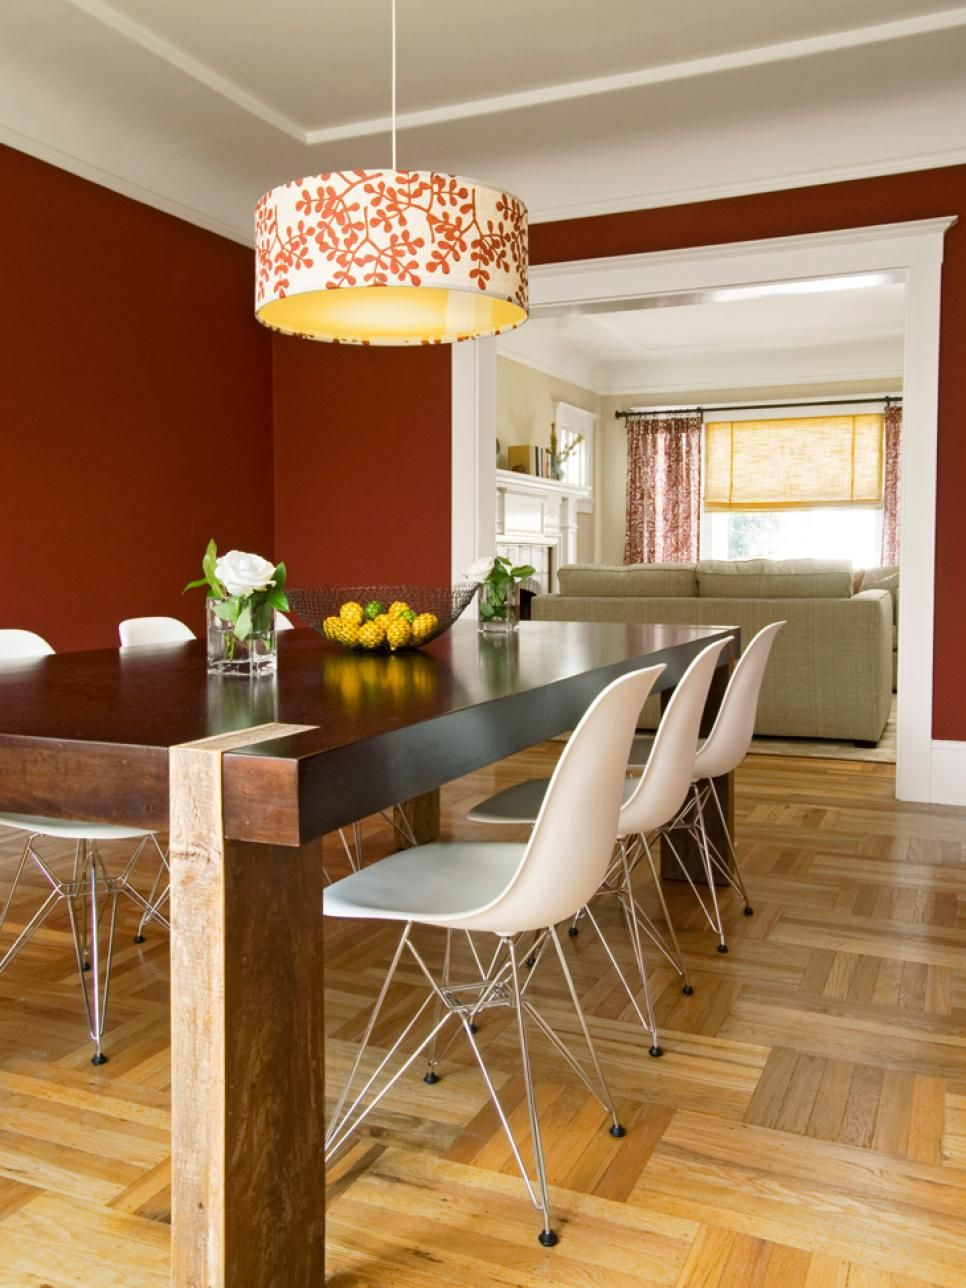 Decorating With Warm Rich Colors Eclectic Dining RoomsRed